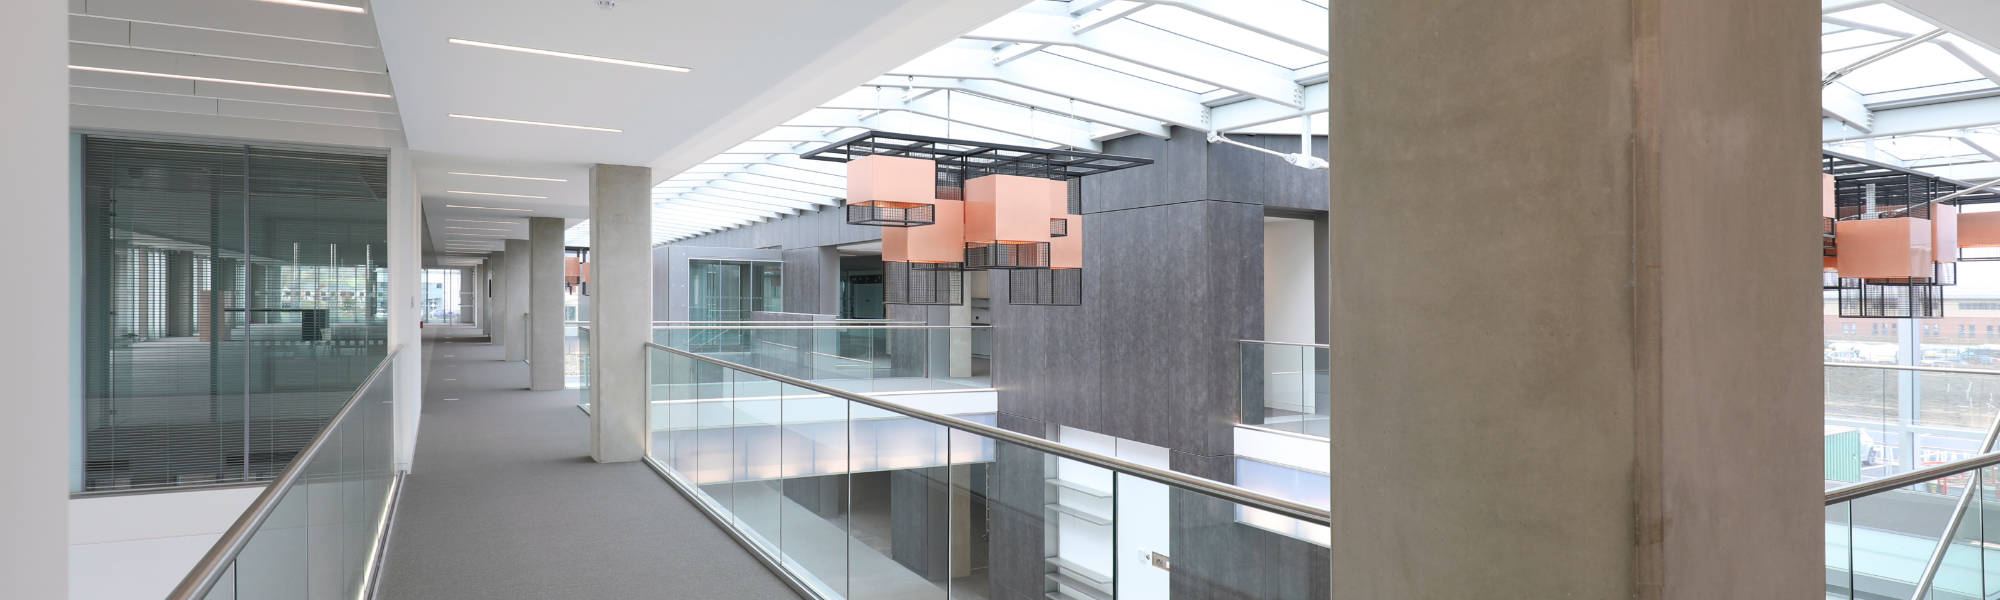 The first floor having two separate and distinct floor areas separated by an atrium area